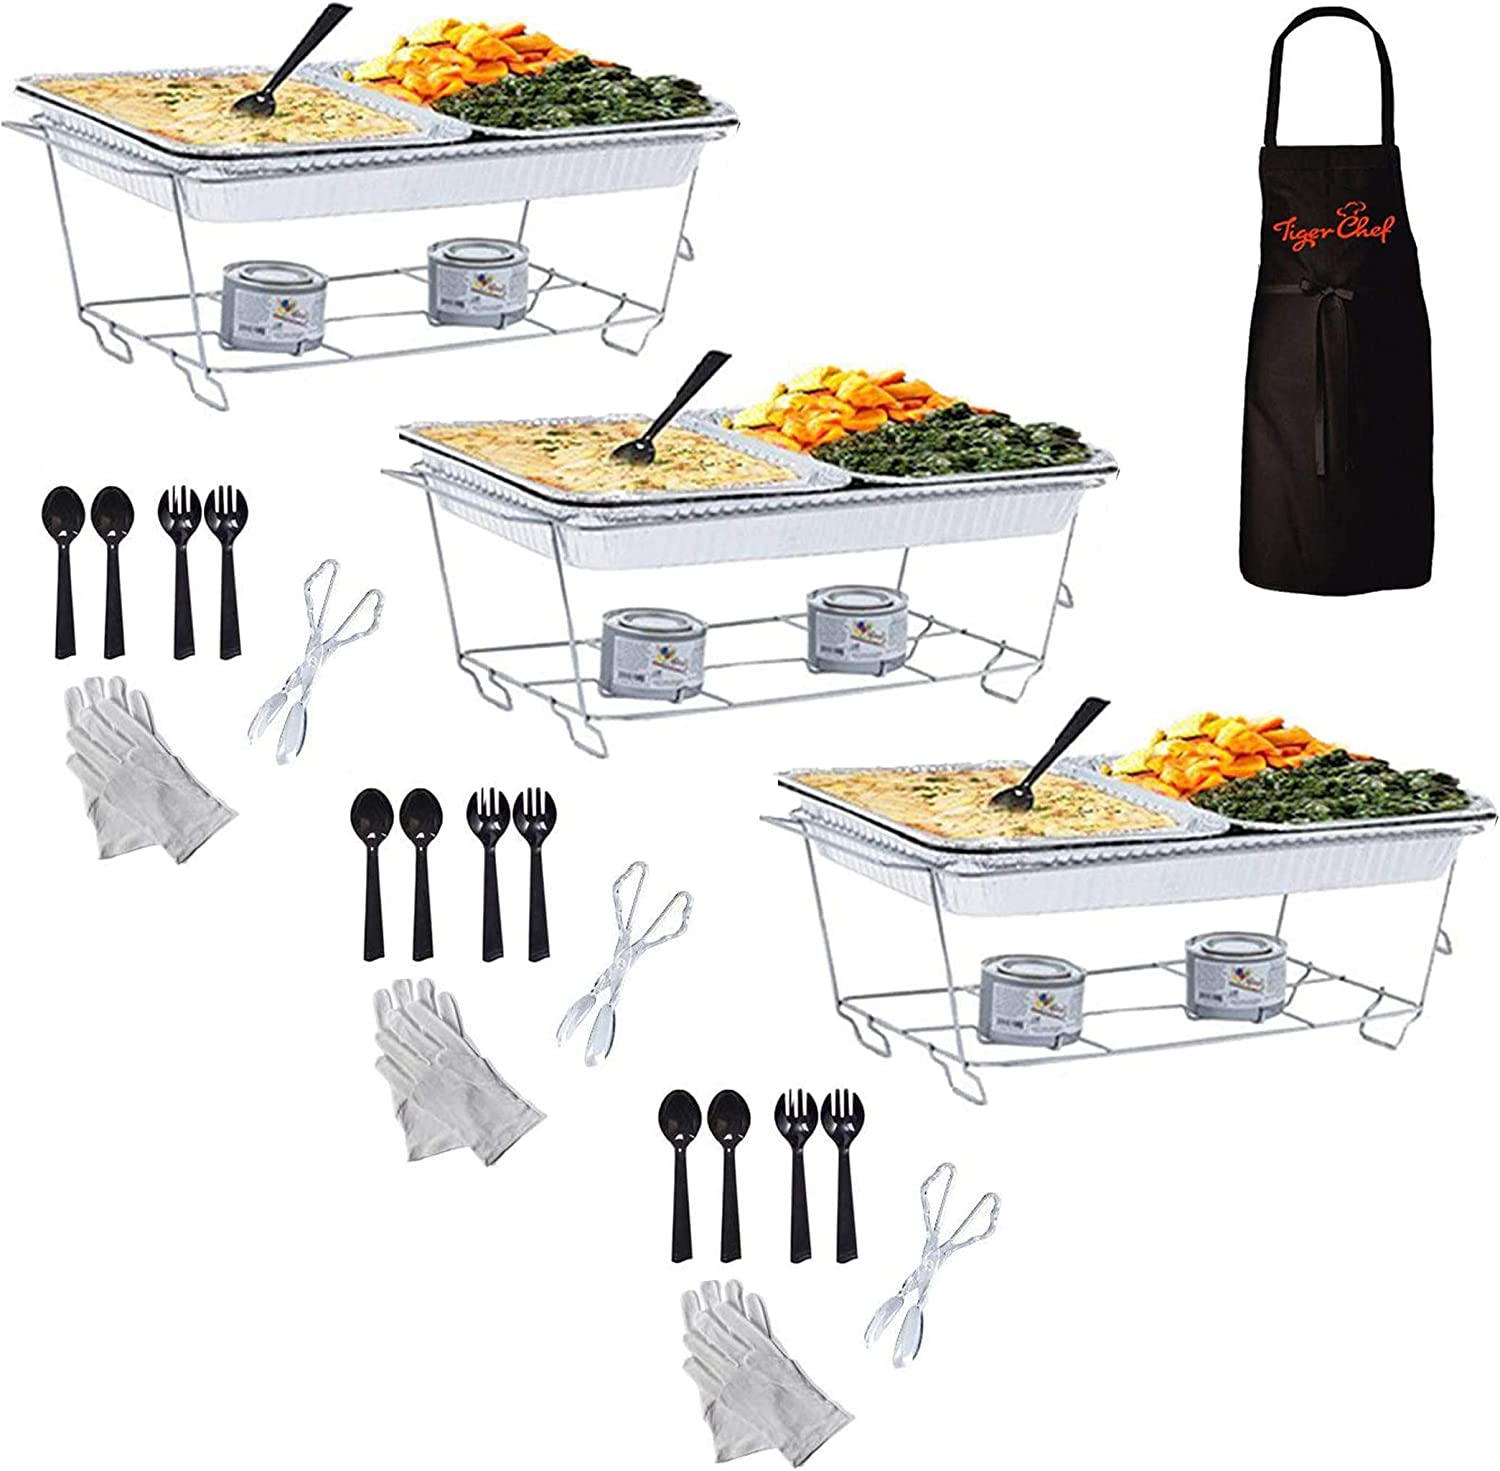 Tiger Chef Chafing Dish Buffet Set Disposable - Full Size Disposable Wire Chafer Stand Kit - Chafing Stands, Fuel Gel Cans, Aluminum Pans, Serving Tong & Utensils (40 Piece)